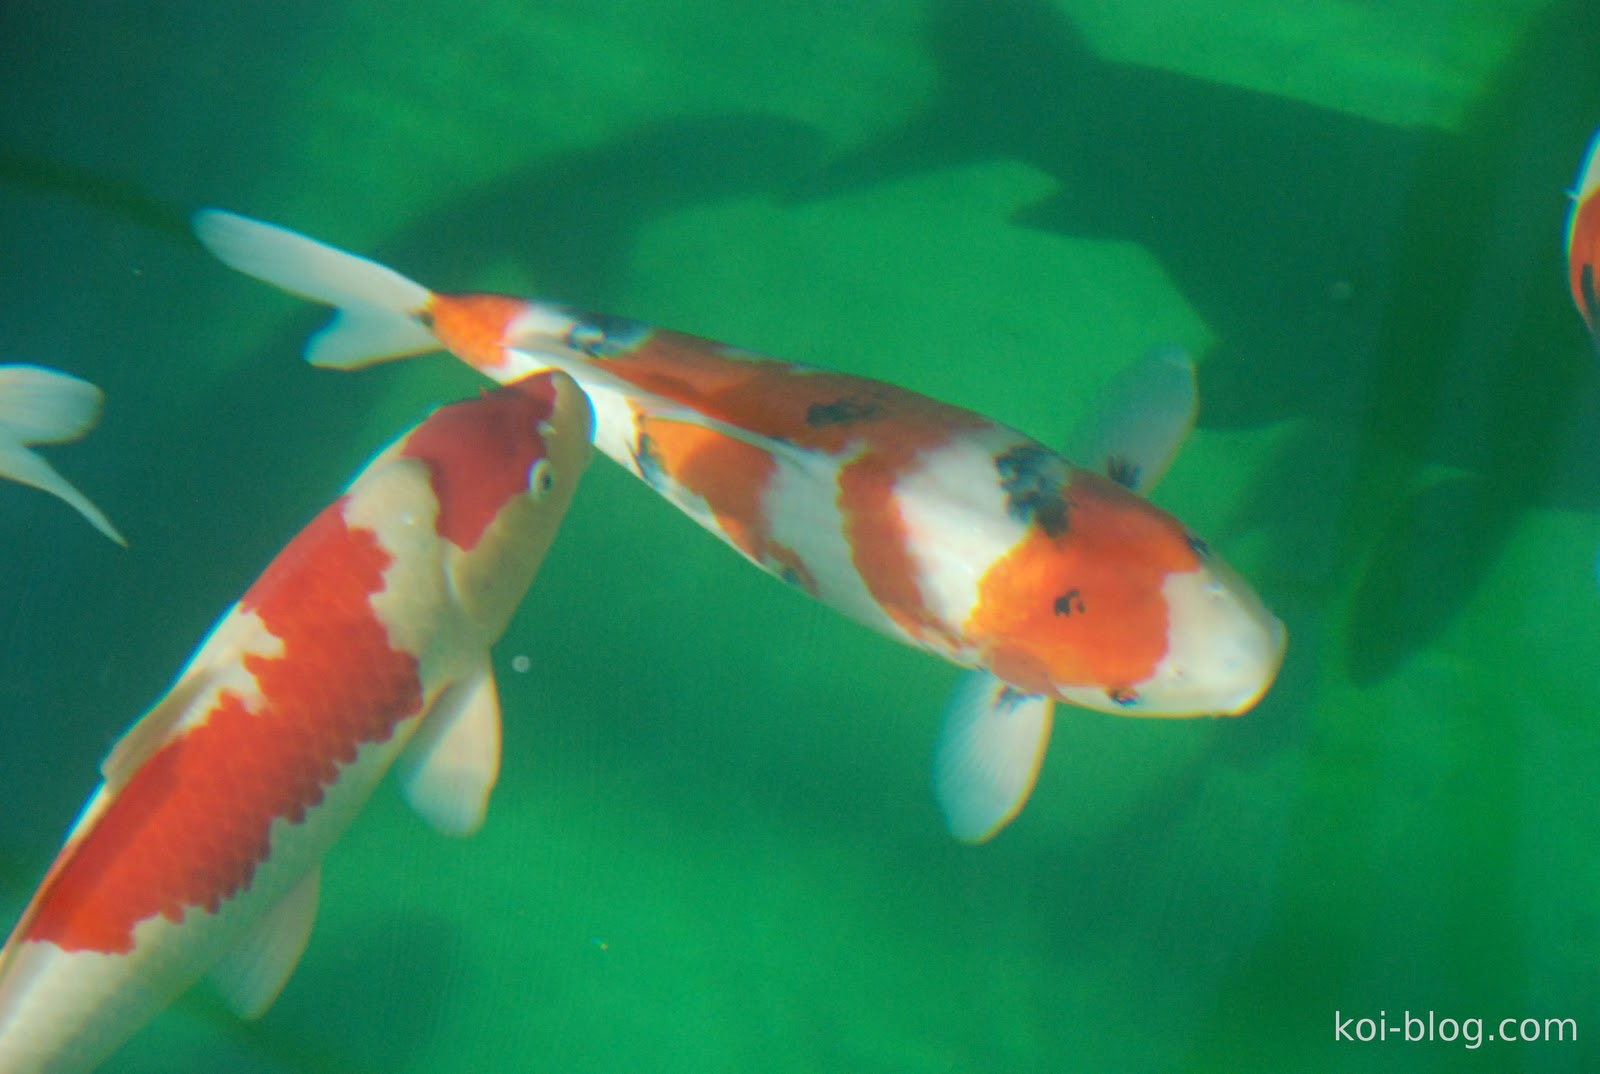 Koi blog koi for Koi carp pond depth